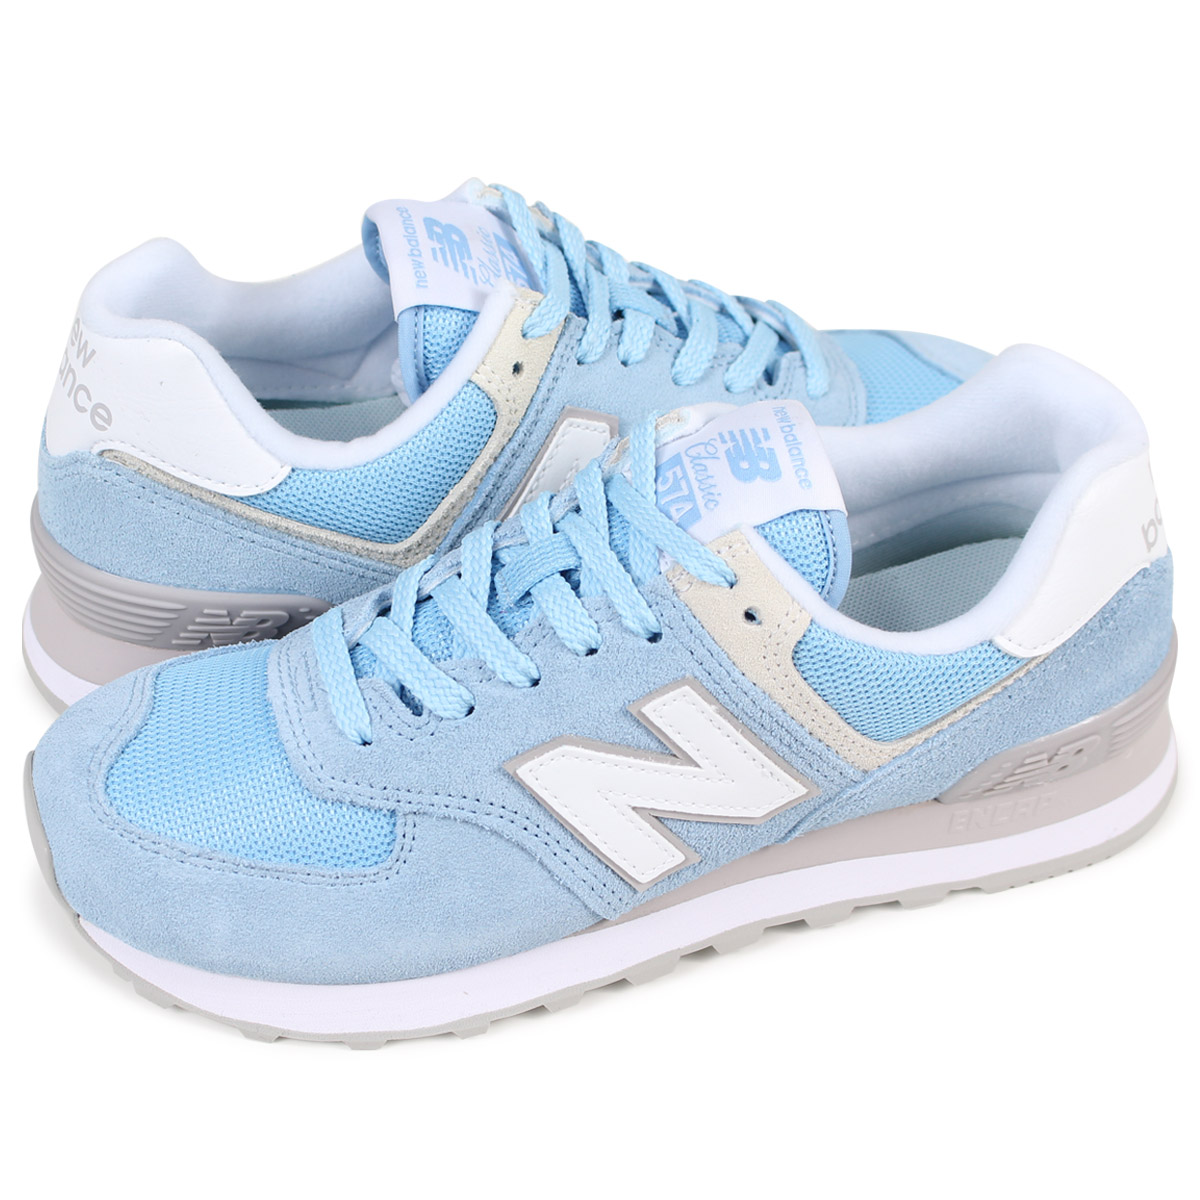 promo code 9770d 13b66 new balance WL574ESB New Balance 574 Lady's sneakers B Wise blue